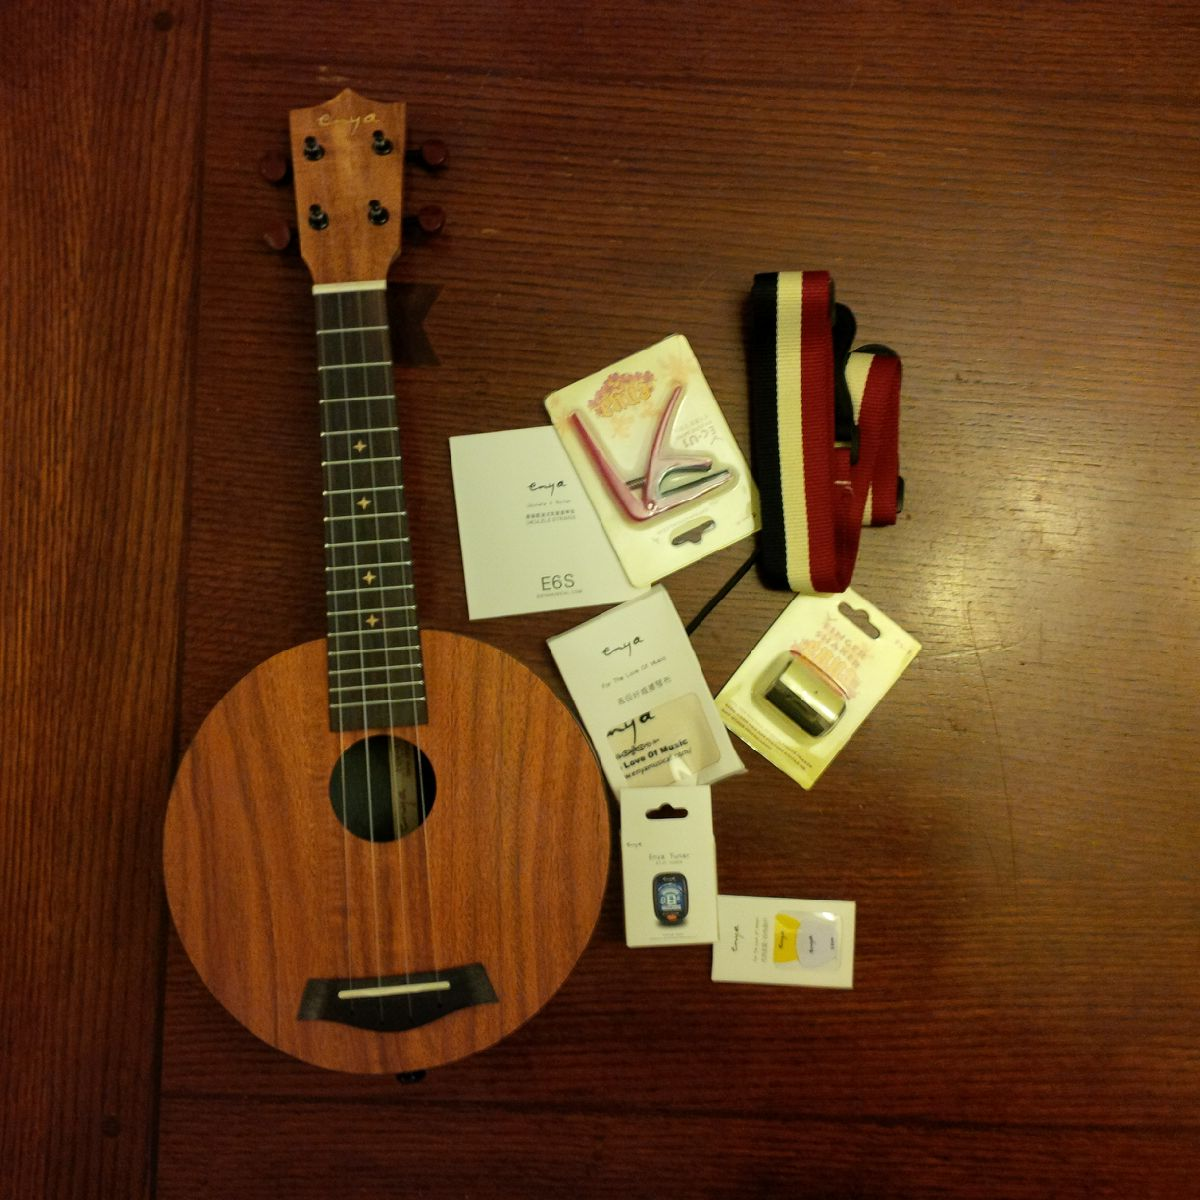 Ukulele with accessories